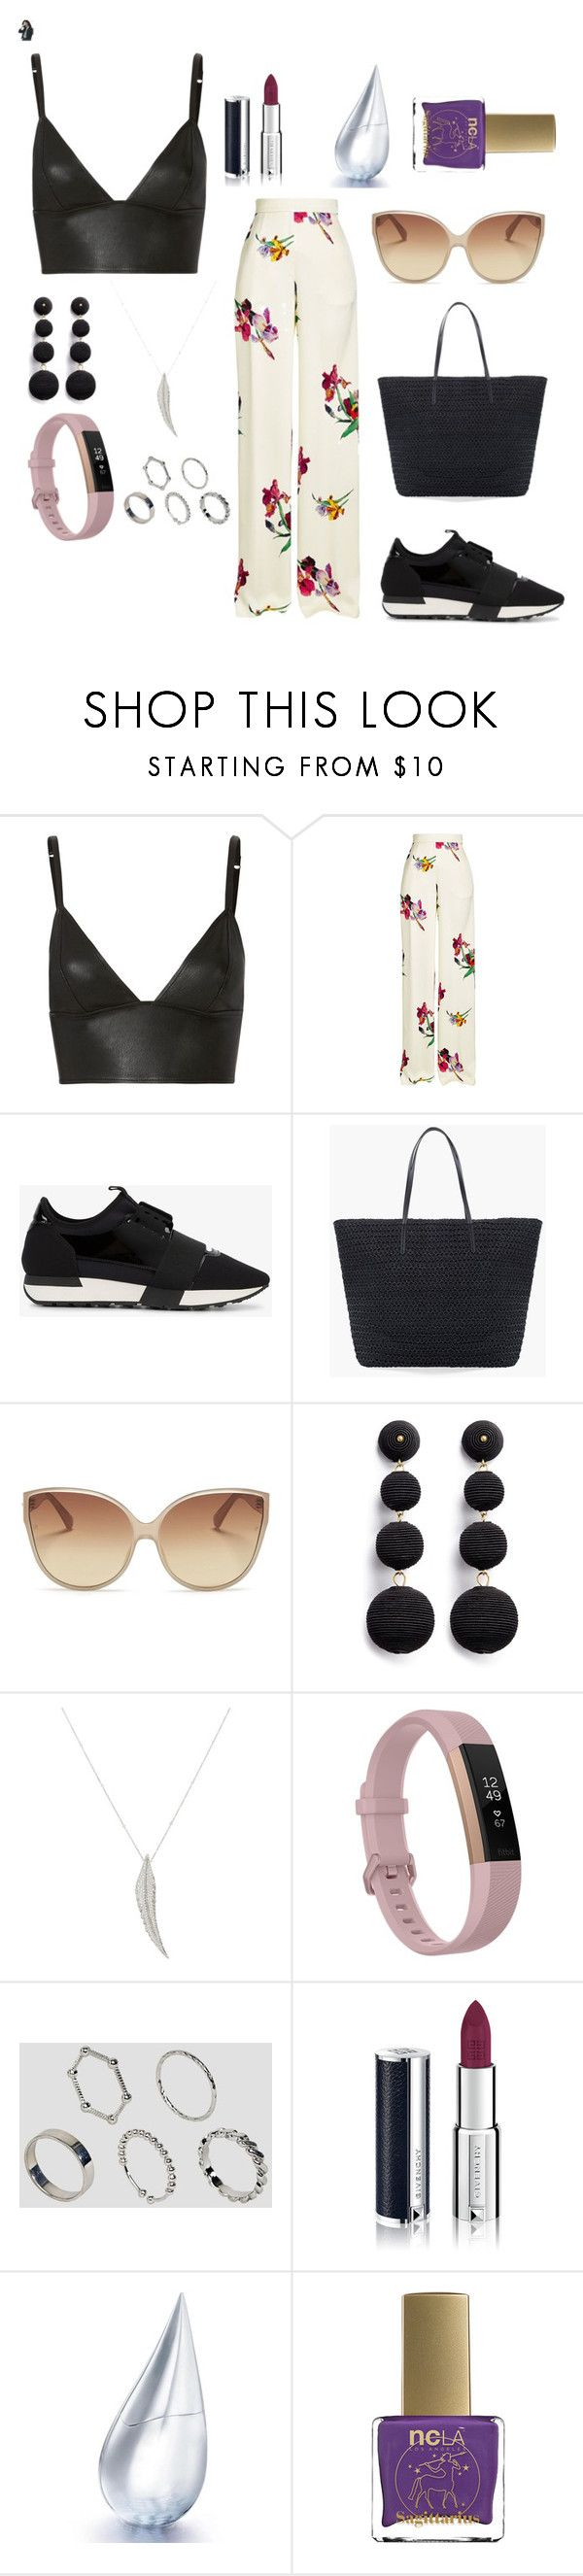 """Ootd - 6:32 A.M."" by thebeauty26 ❤ liked on Polyvore featuring T By Alexander Wang, Etro, Balenciaga, Chico's, Linda Farrow, Kenneth Jay Lane, Sidney Garber, Fitbit, ASOS and Givenchy"